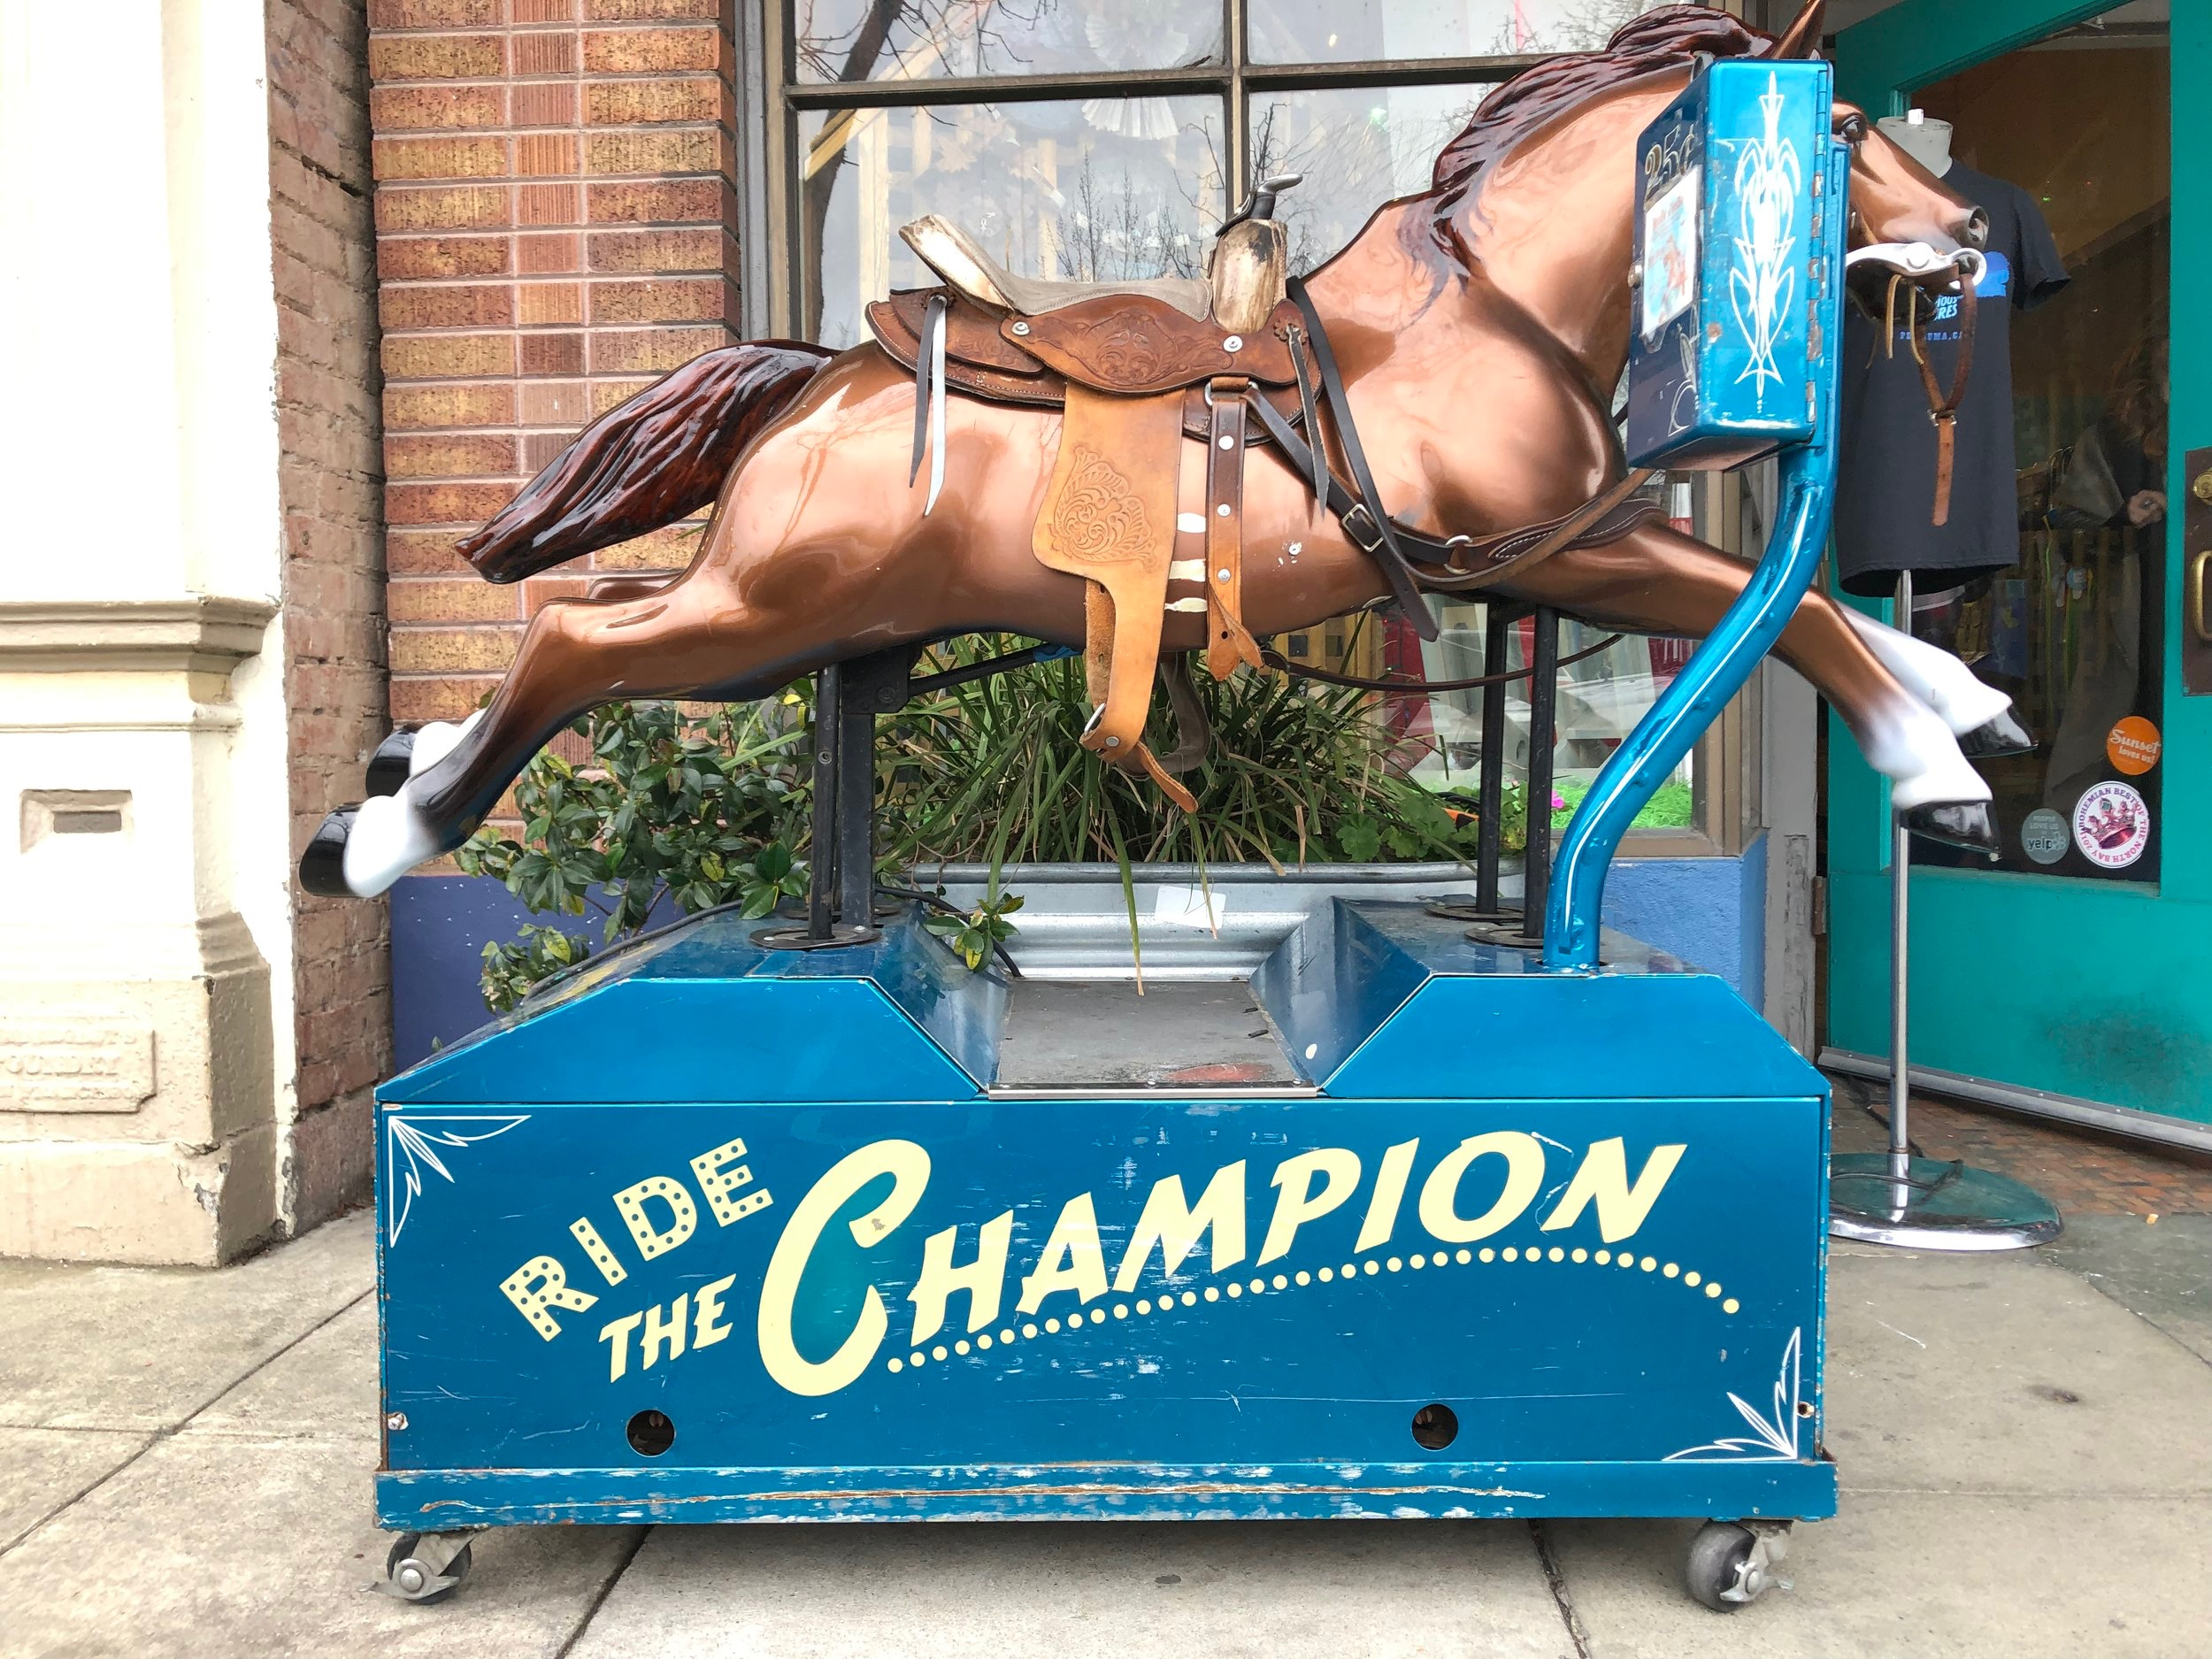 Have three minutes and $0.25 to spend in Petaluma? Ride the Champion.